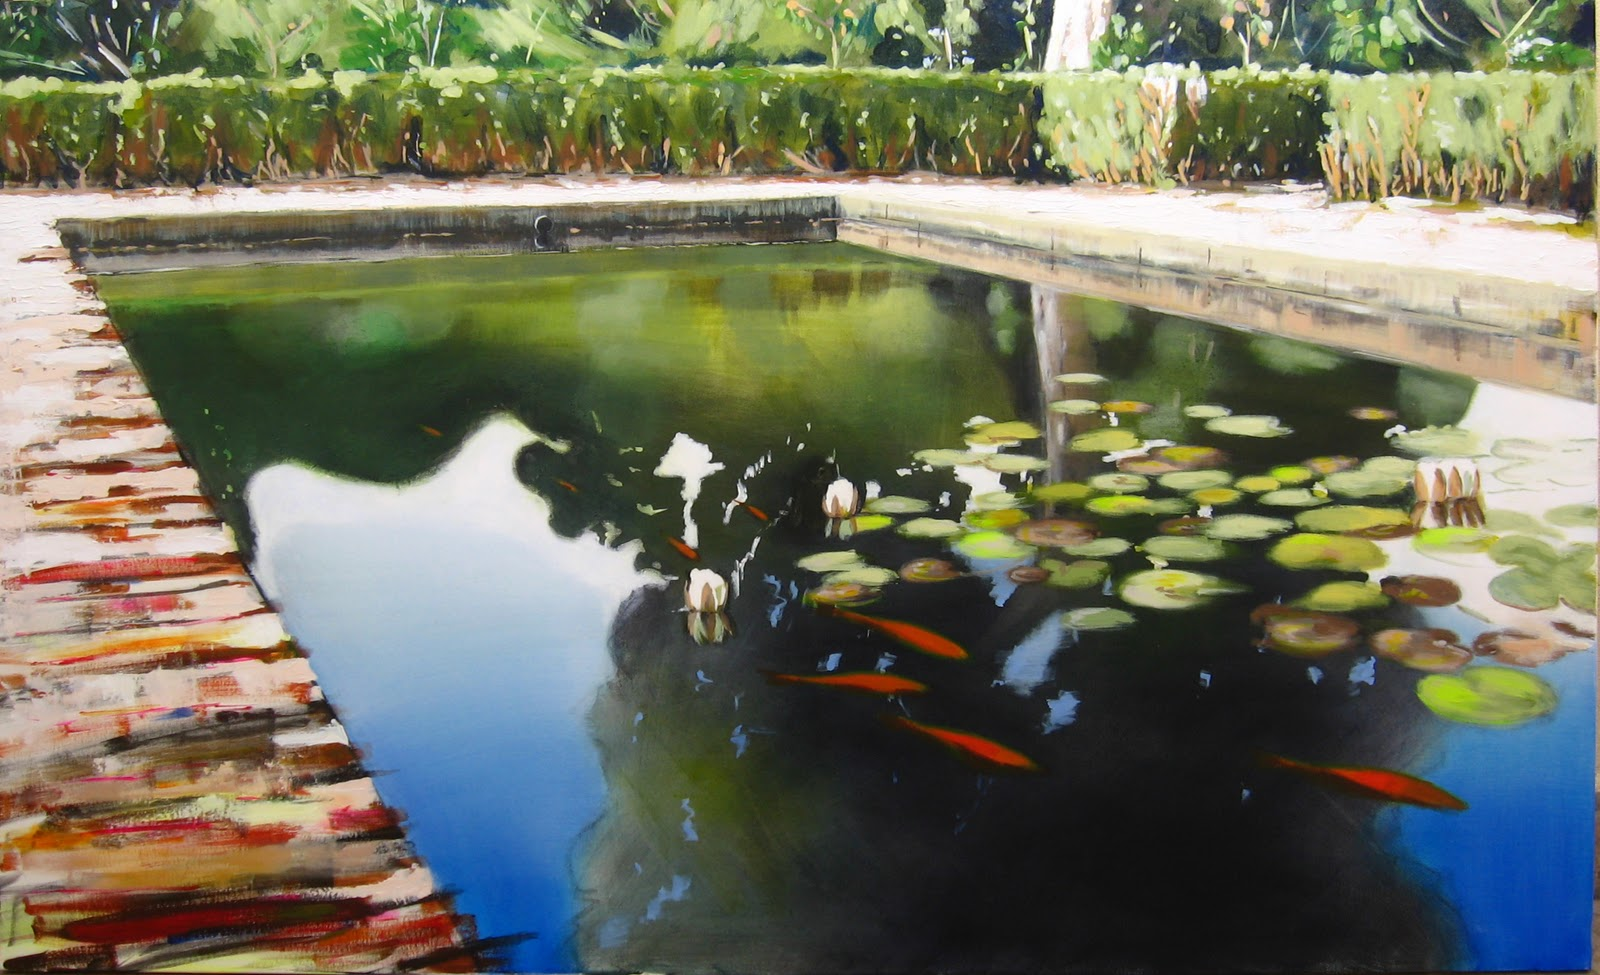 Galeria arte contemporaneo rafael cope art gallery on for Jardin acuatico